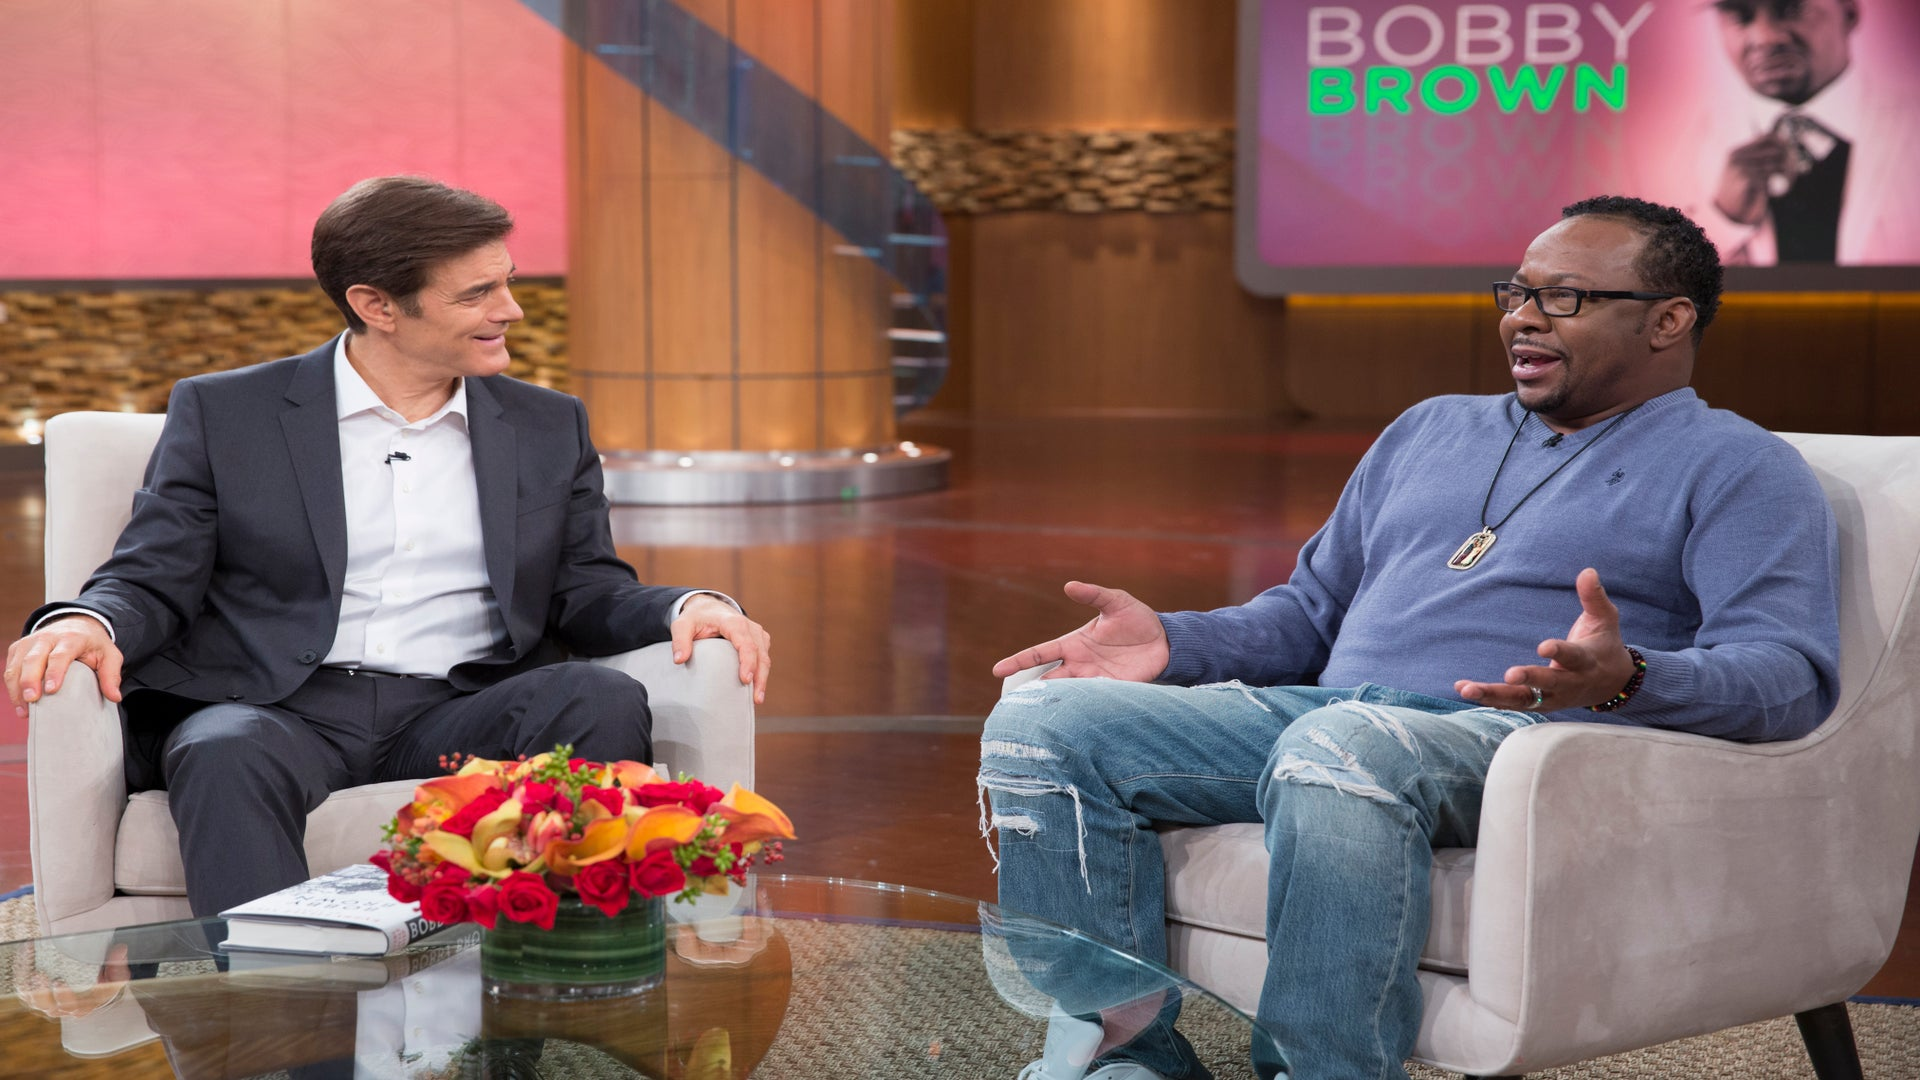 Must-See: Bobby Brown Reveals What Finally Got Him Clean and Sober